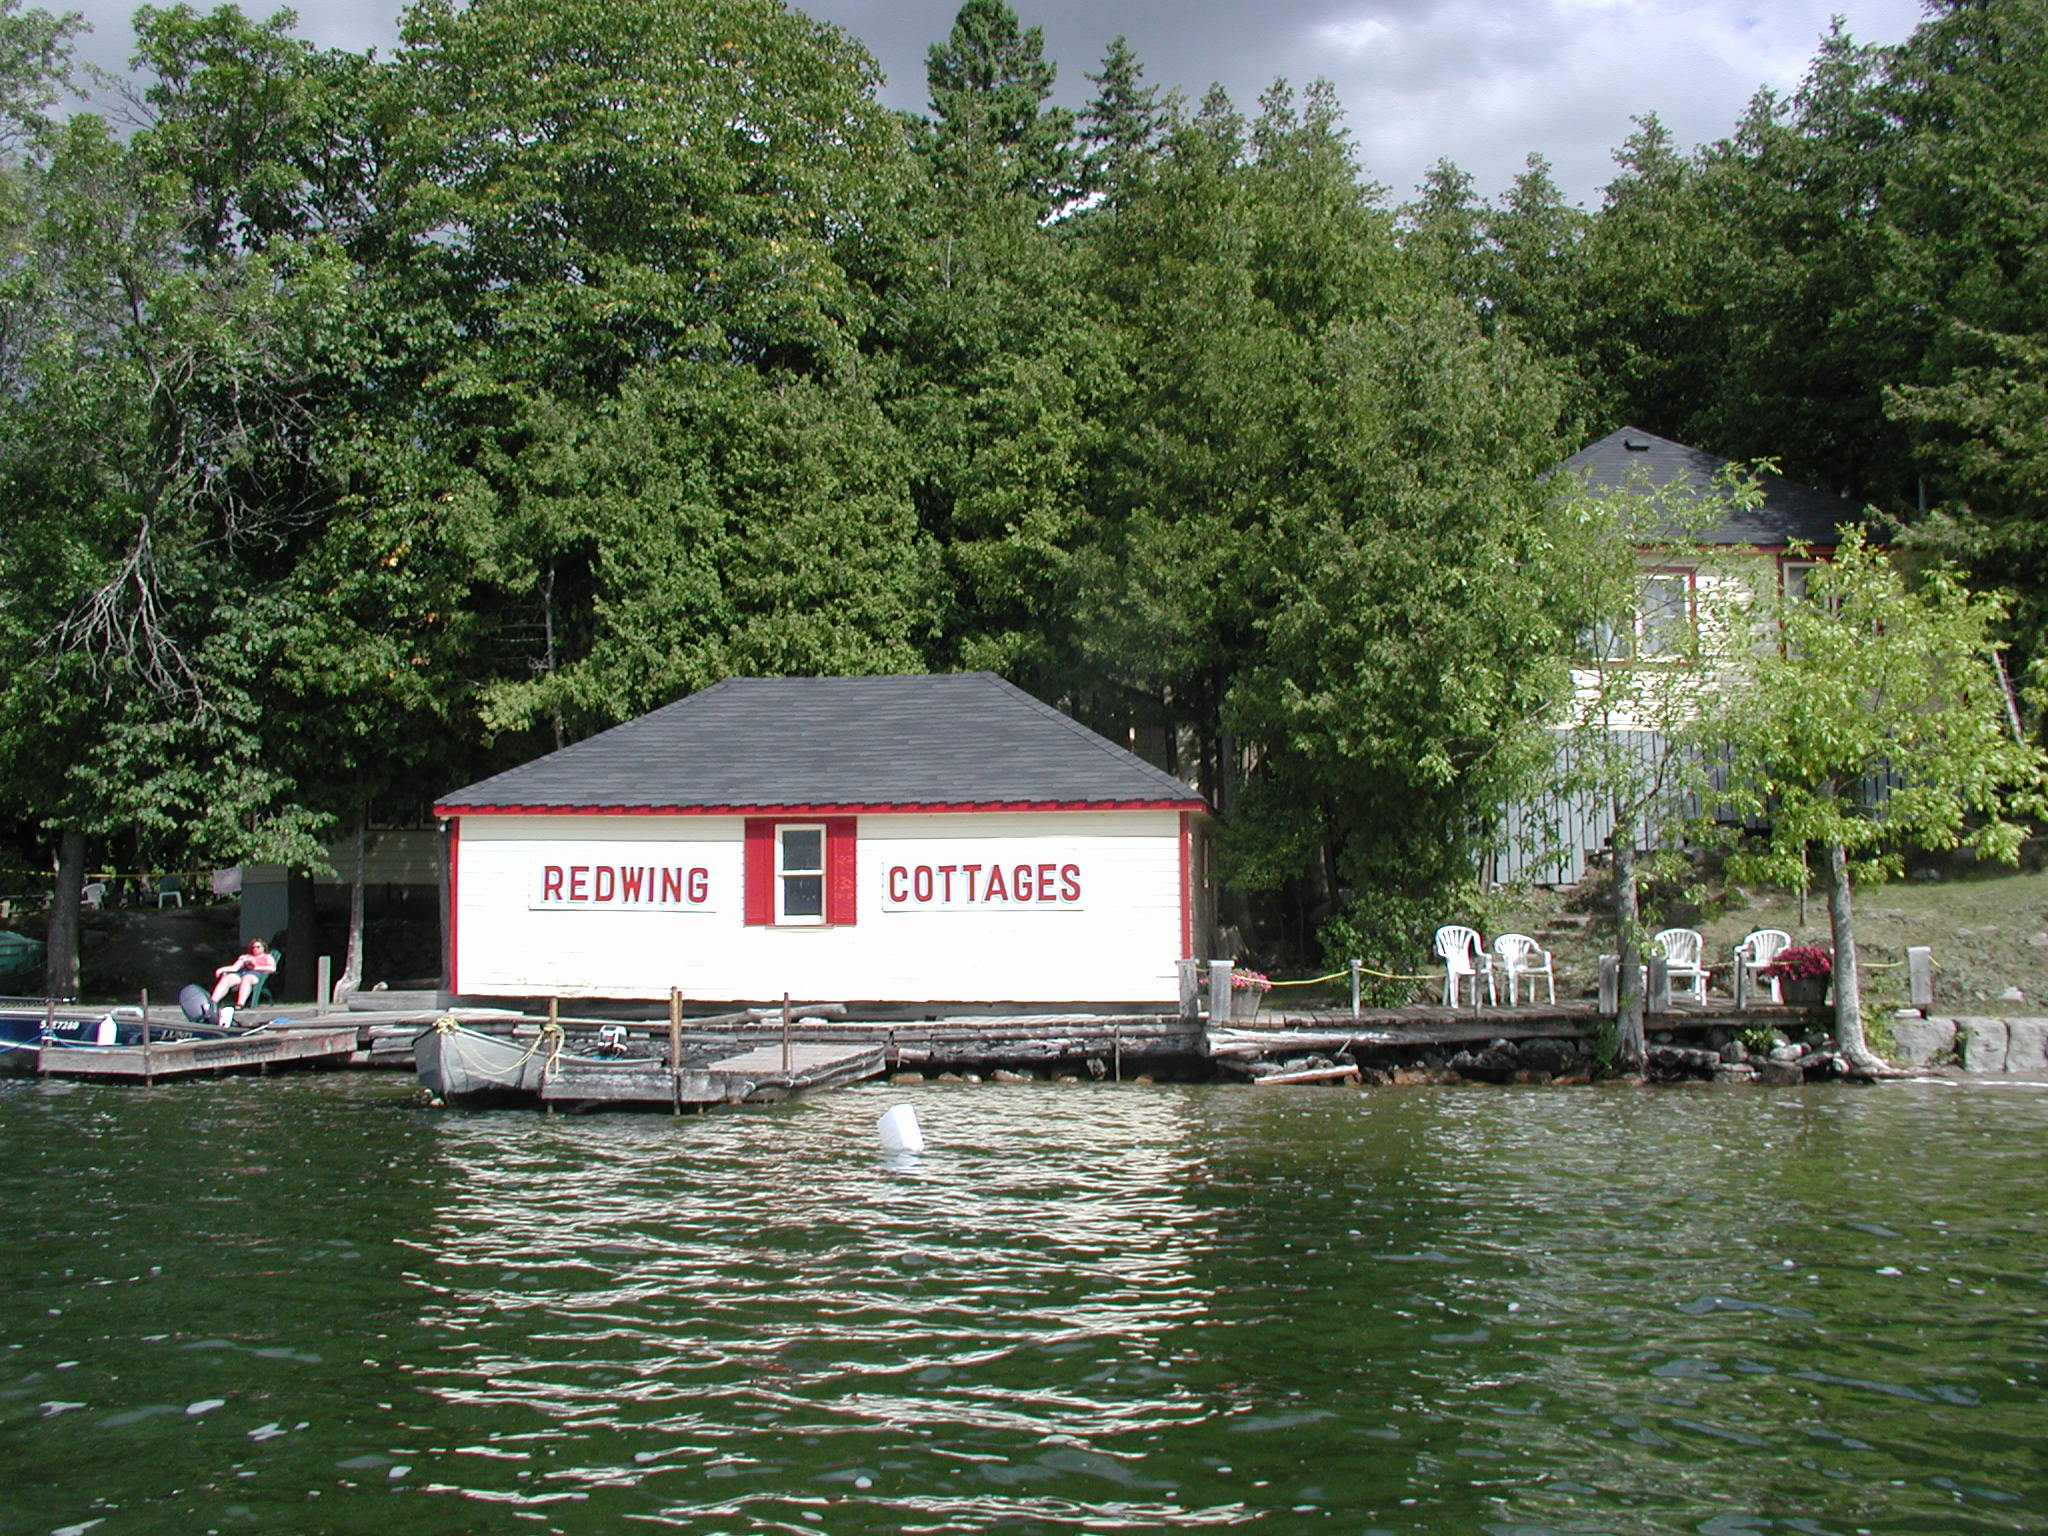 Redwing Cottages Boathouse